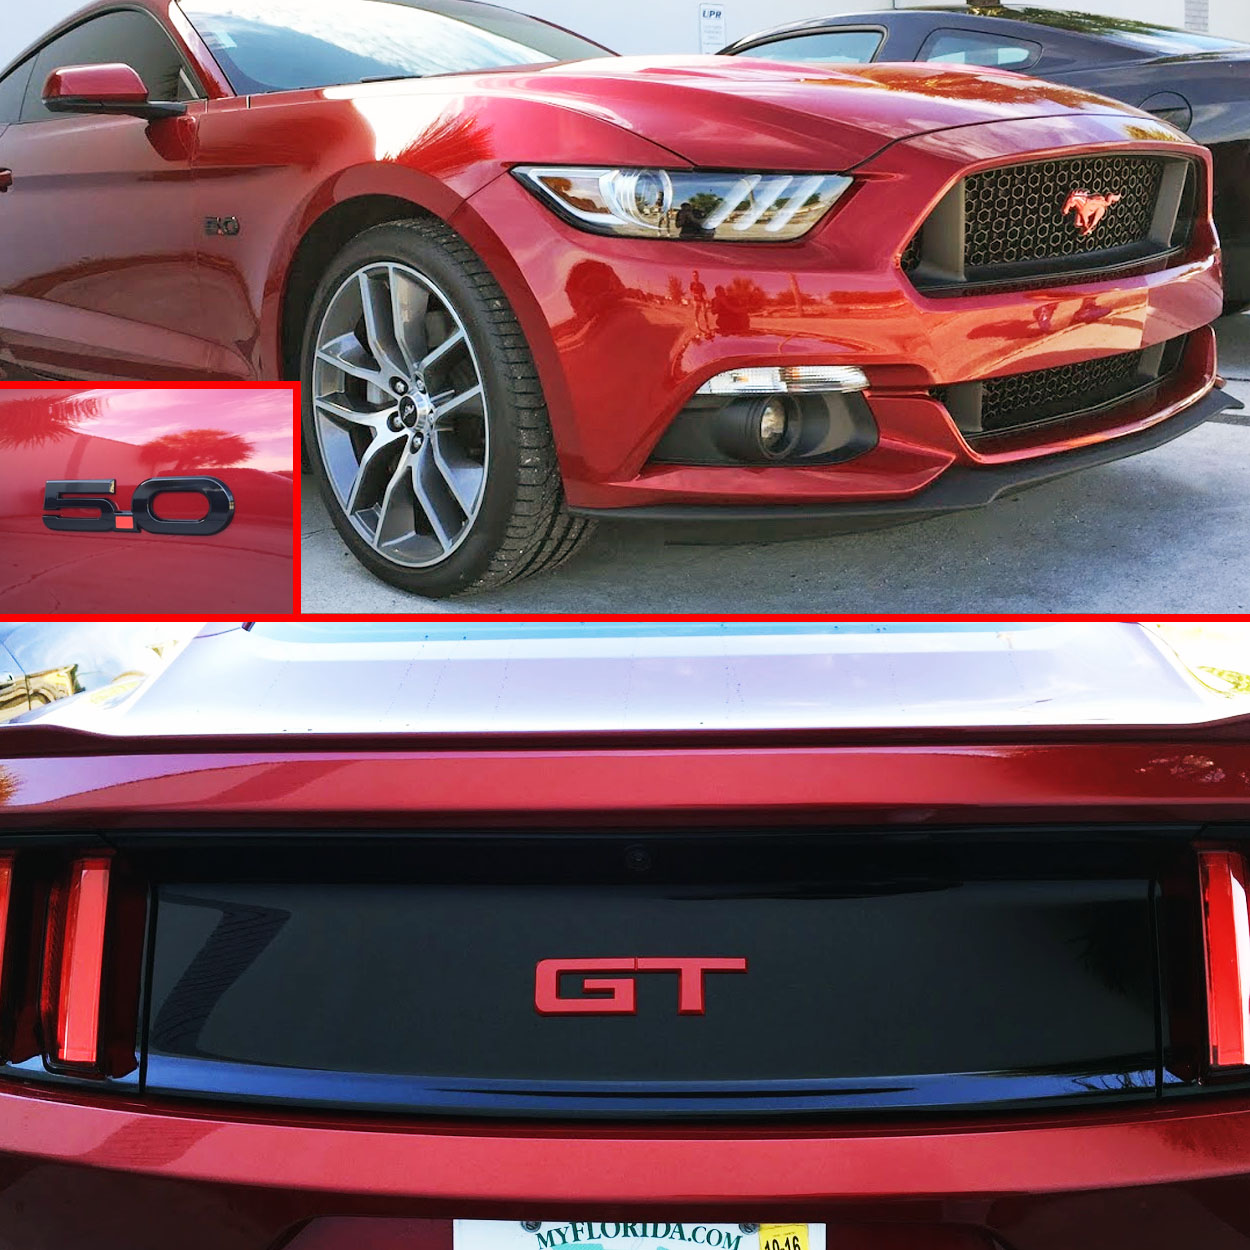 mustang gt emblem ford package rear colored licensed officially coded official emblems colors accessories pair badges